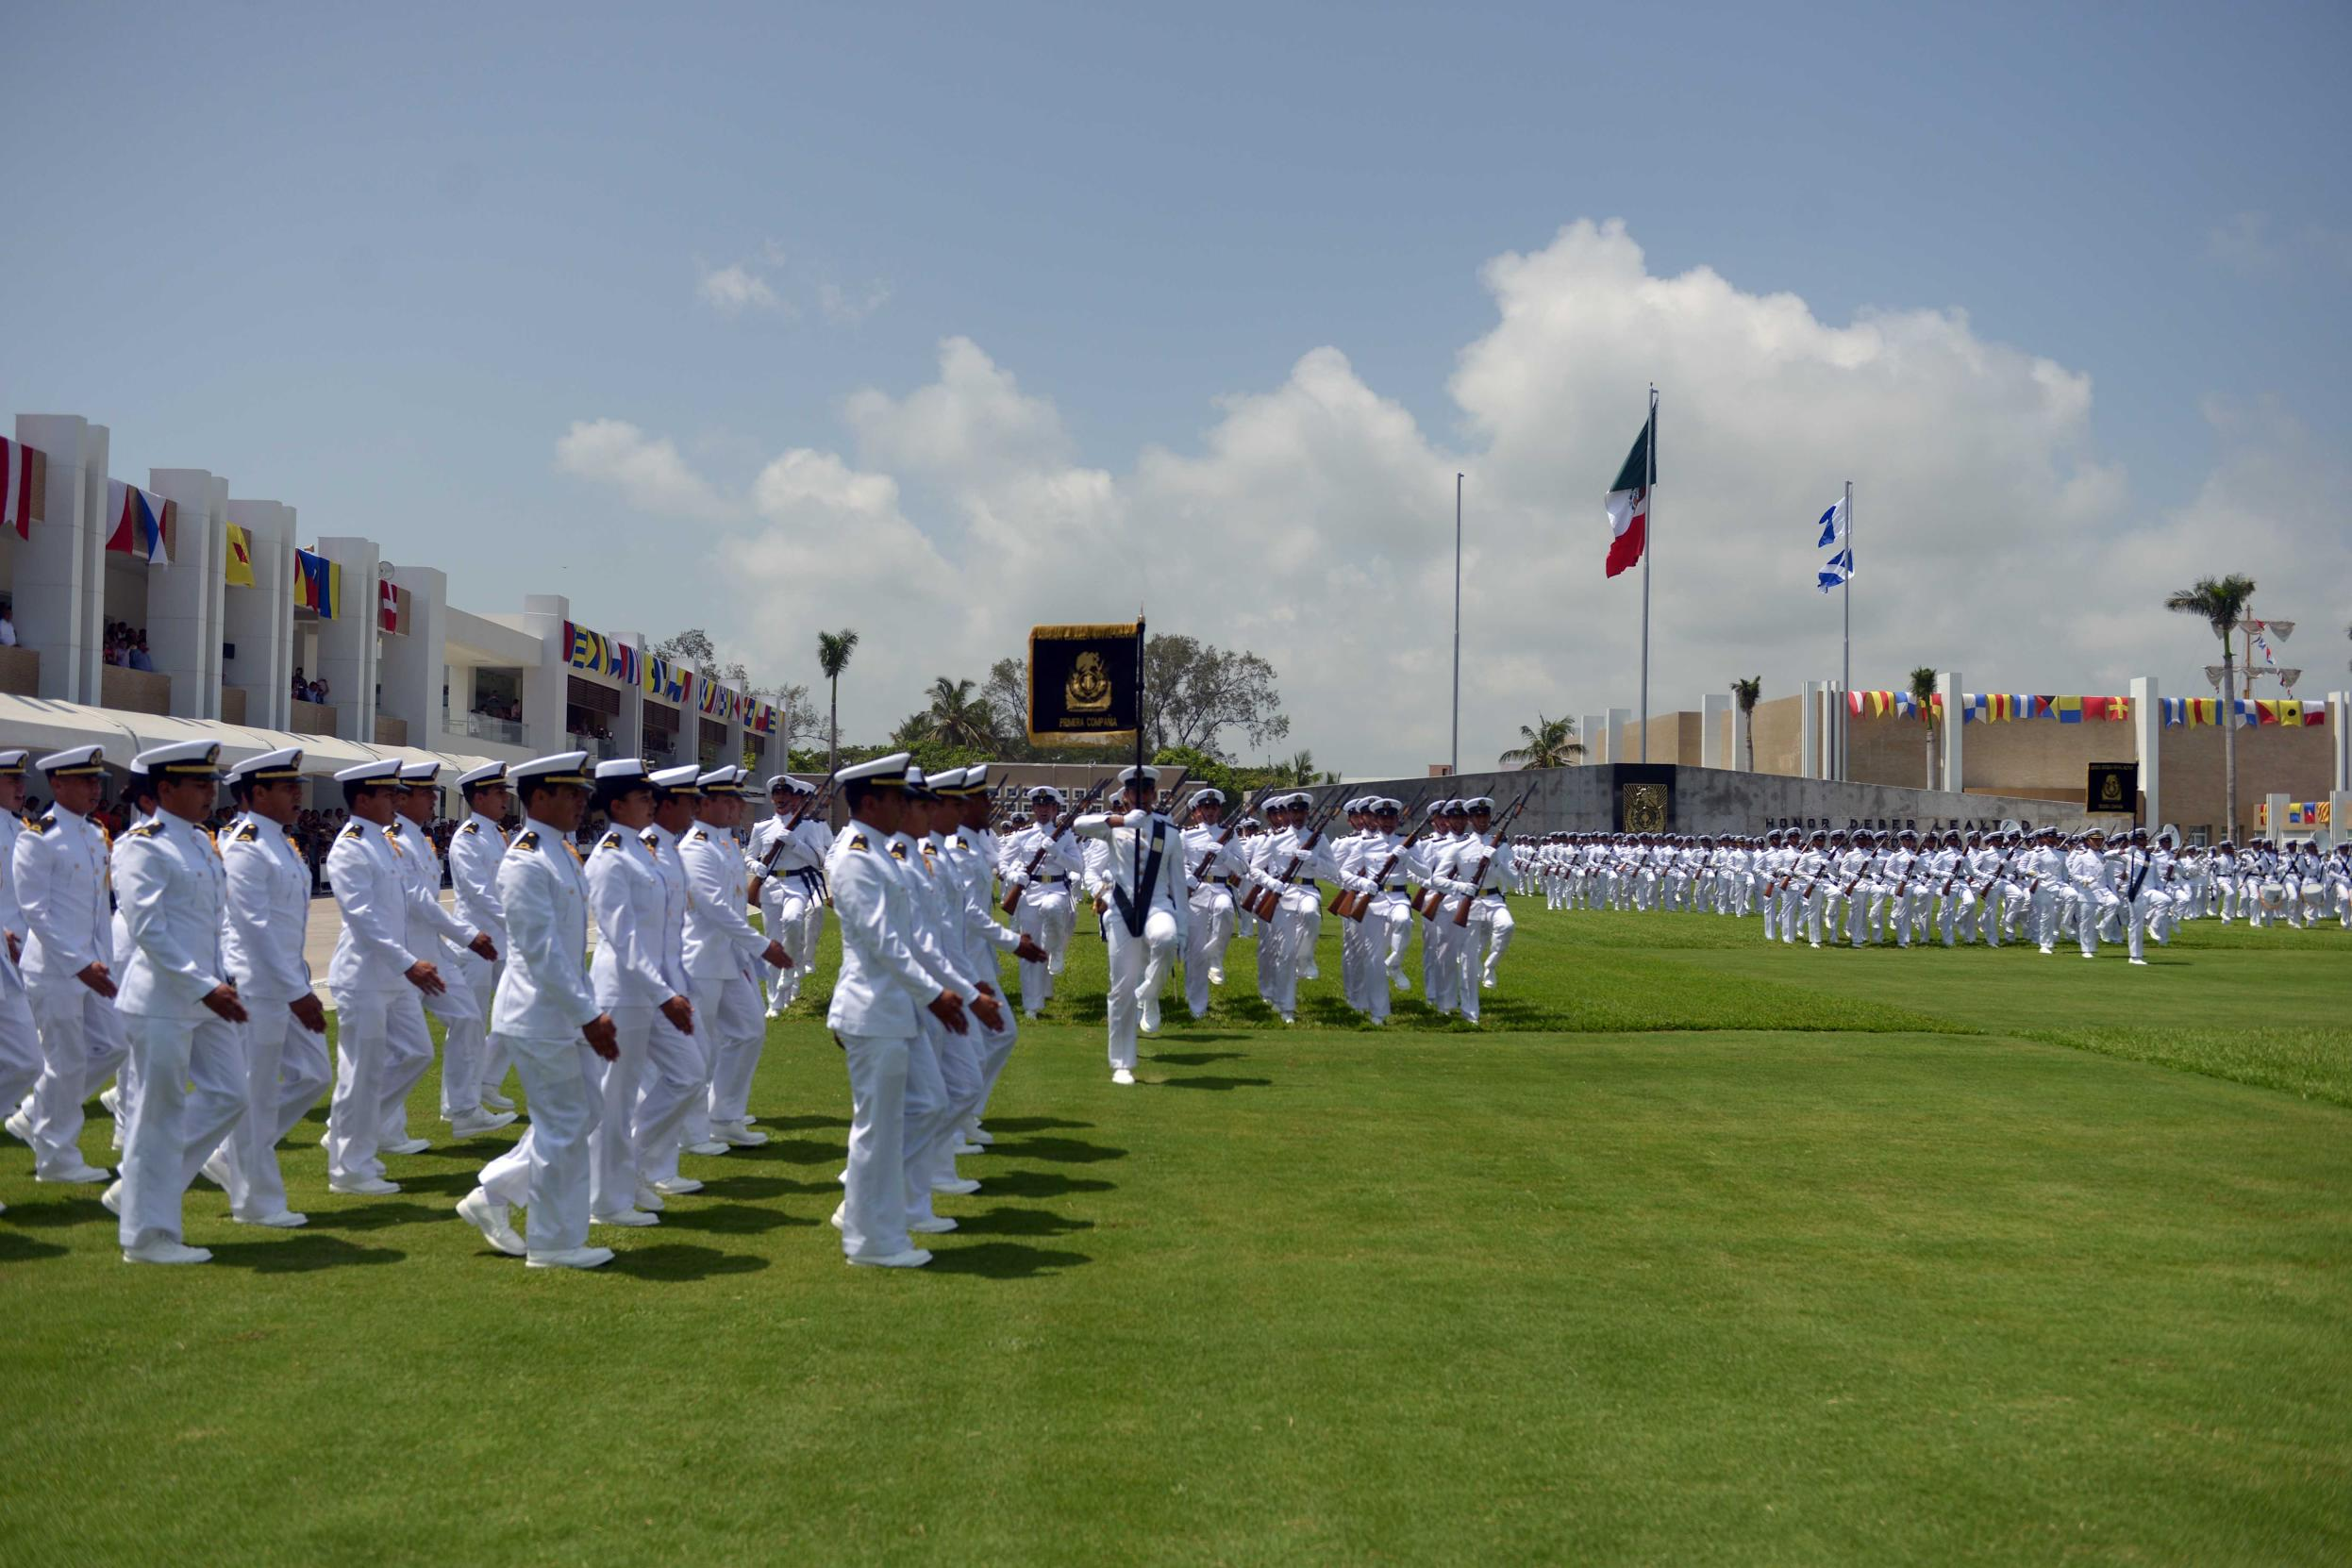 The education offered today by the Heroic Naval Military School, through its six engineering degree programs, is on a par with the best in Mexico.